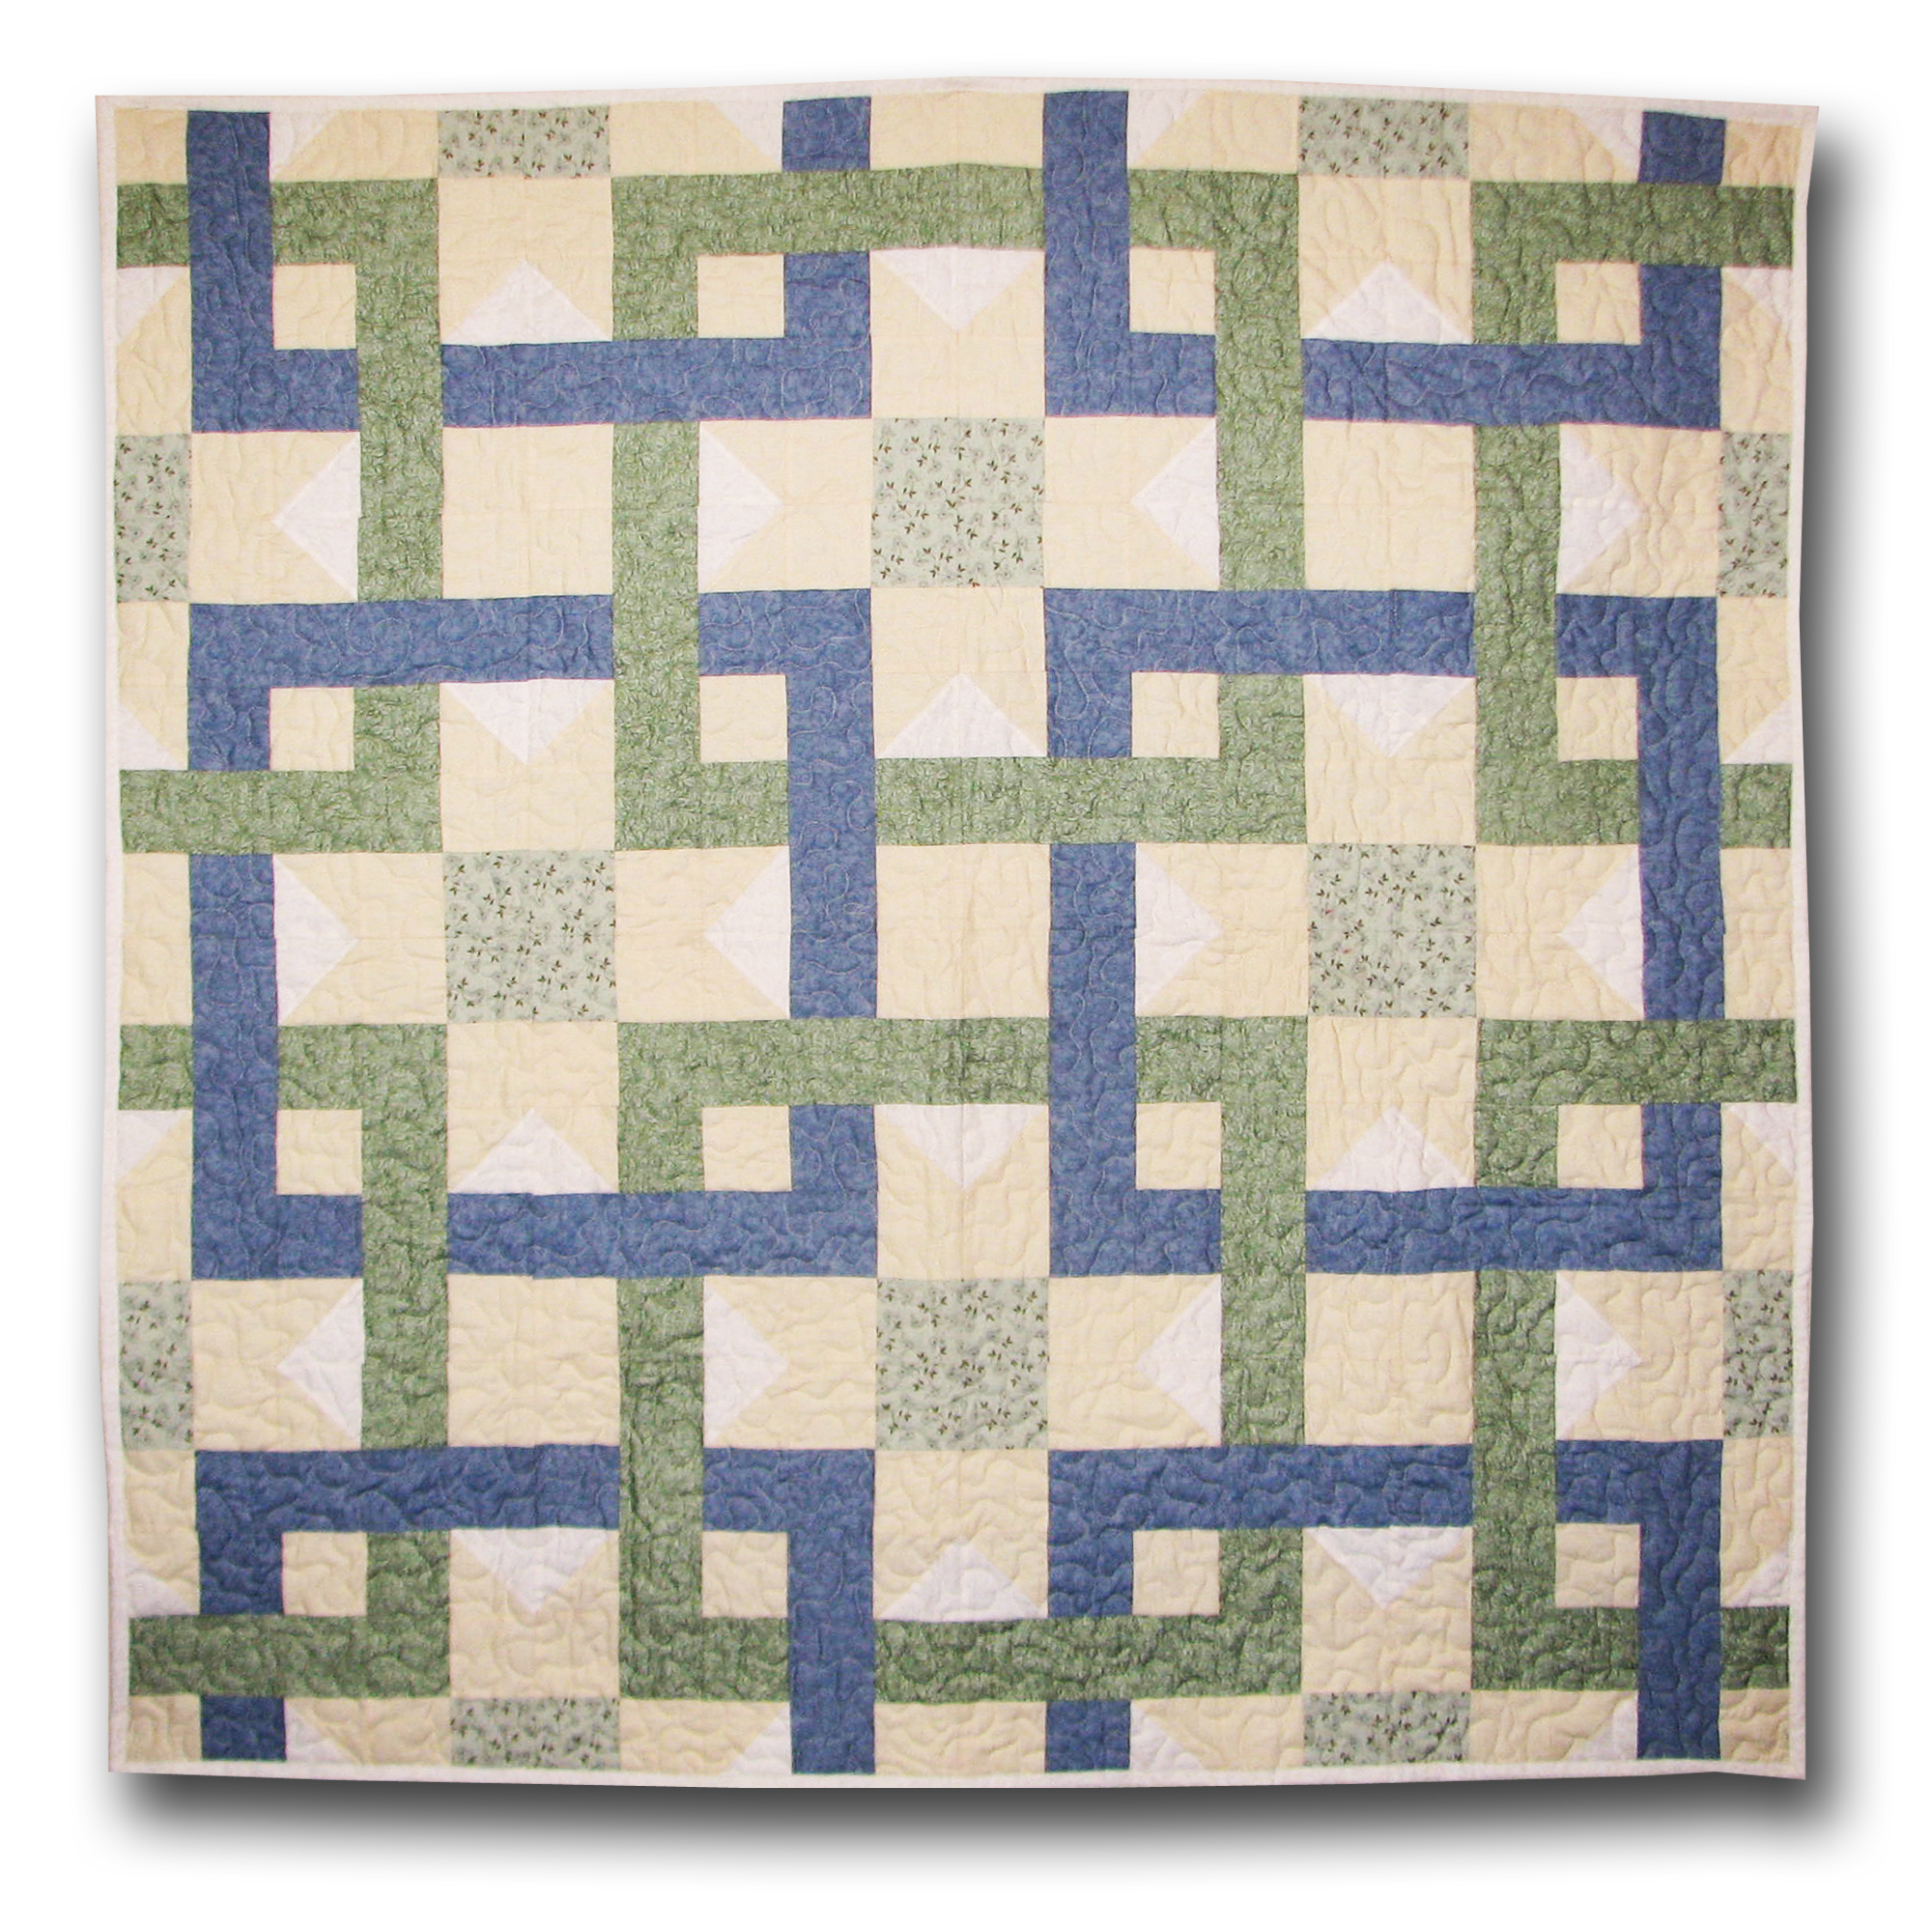 Quilting Pattern Shapes : Interlocking Squares Quilt Pattern ReannaLily Designs